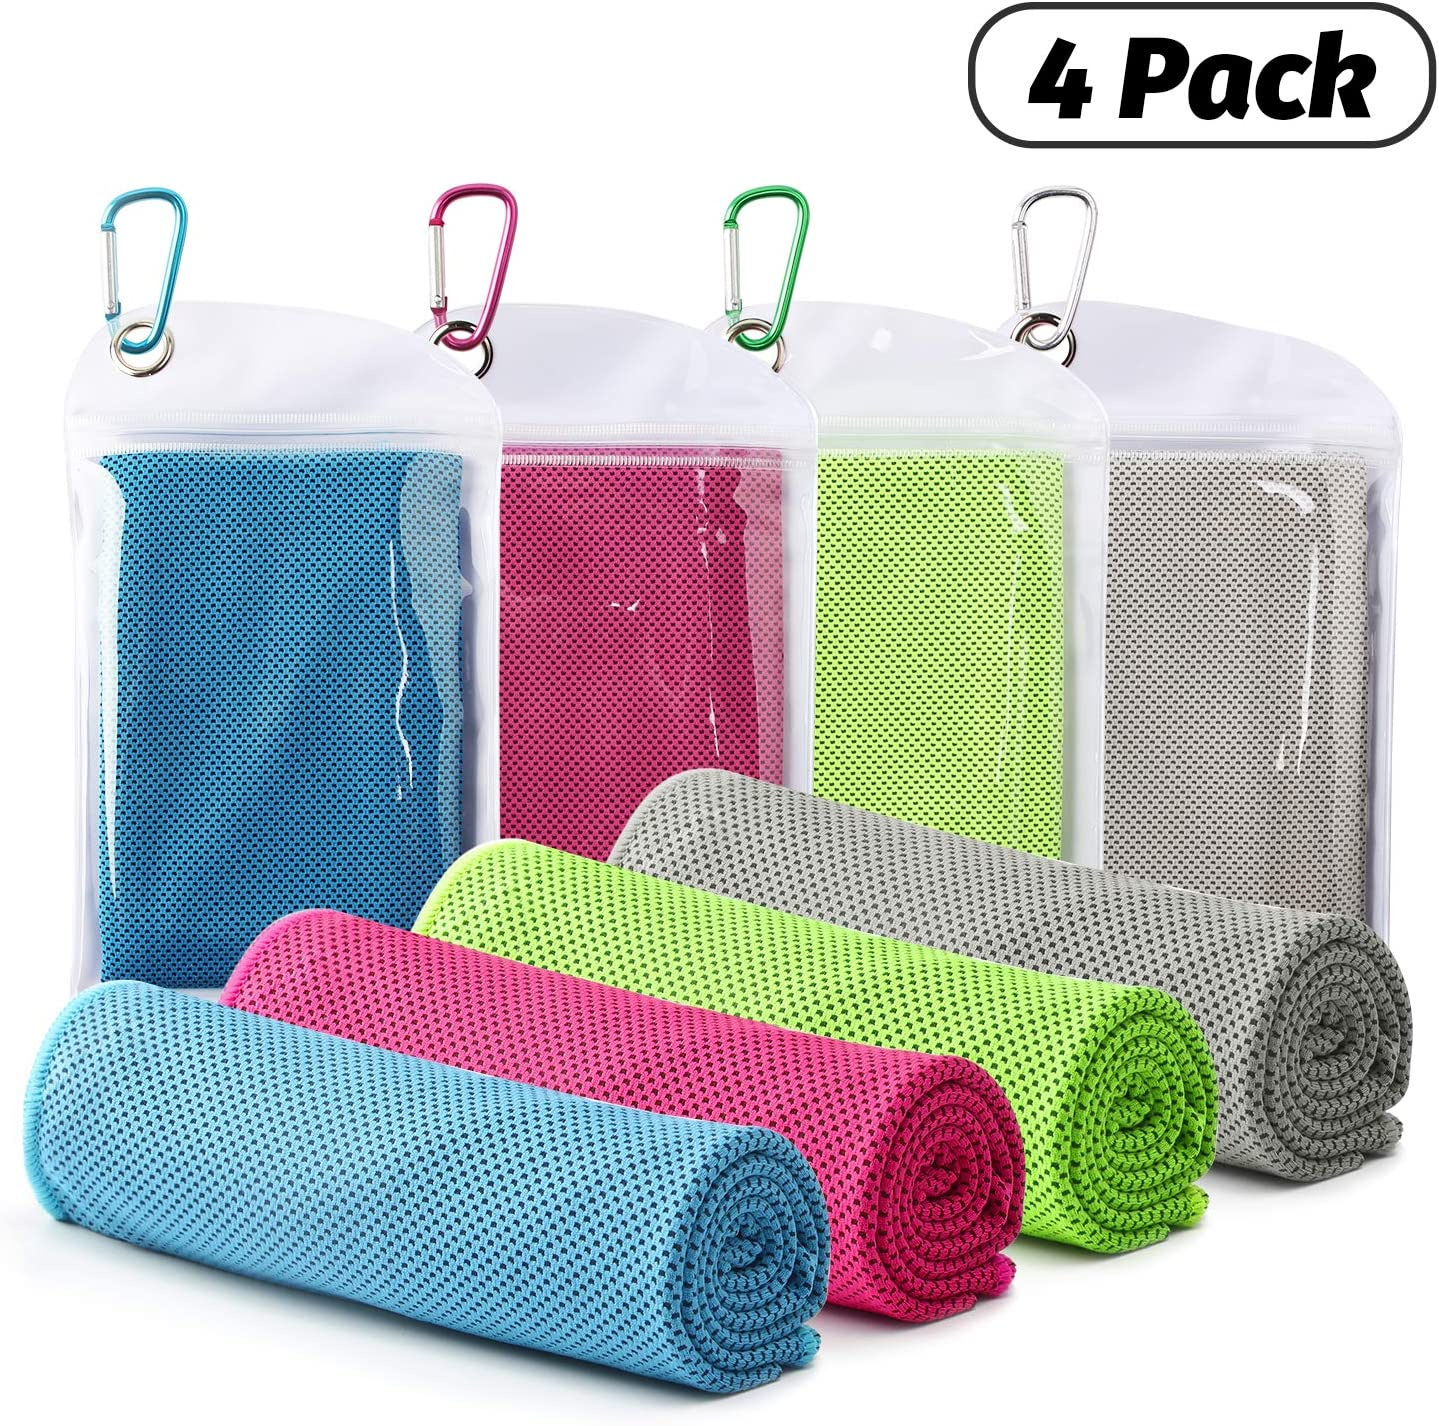 "Famiry 4 Packs Cooling Towel (40""x 12""), Ice Towel, Soft Breathable Chilly Towel, Microfiber Towel for Yoga, Sport, Running, Gym, Workout,Camping, Fitness, Workout & More Activities"